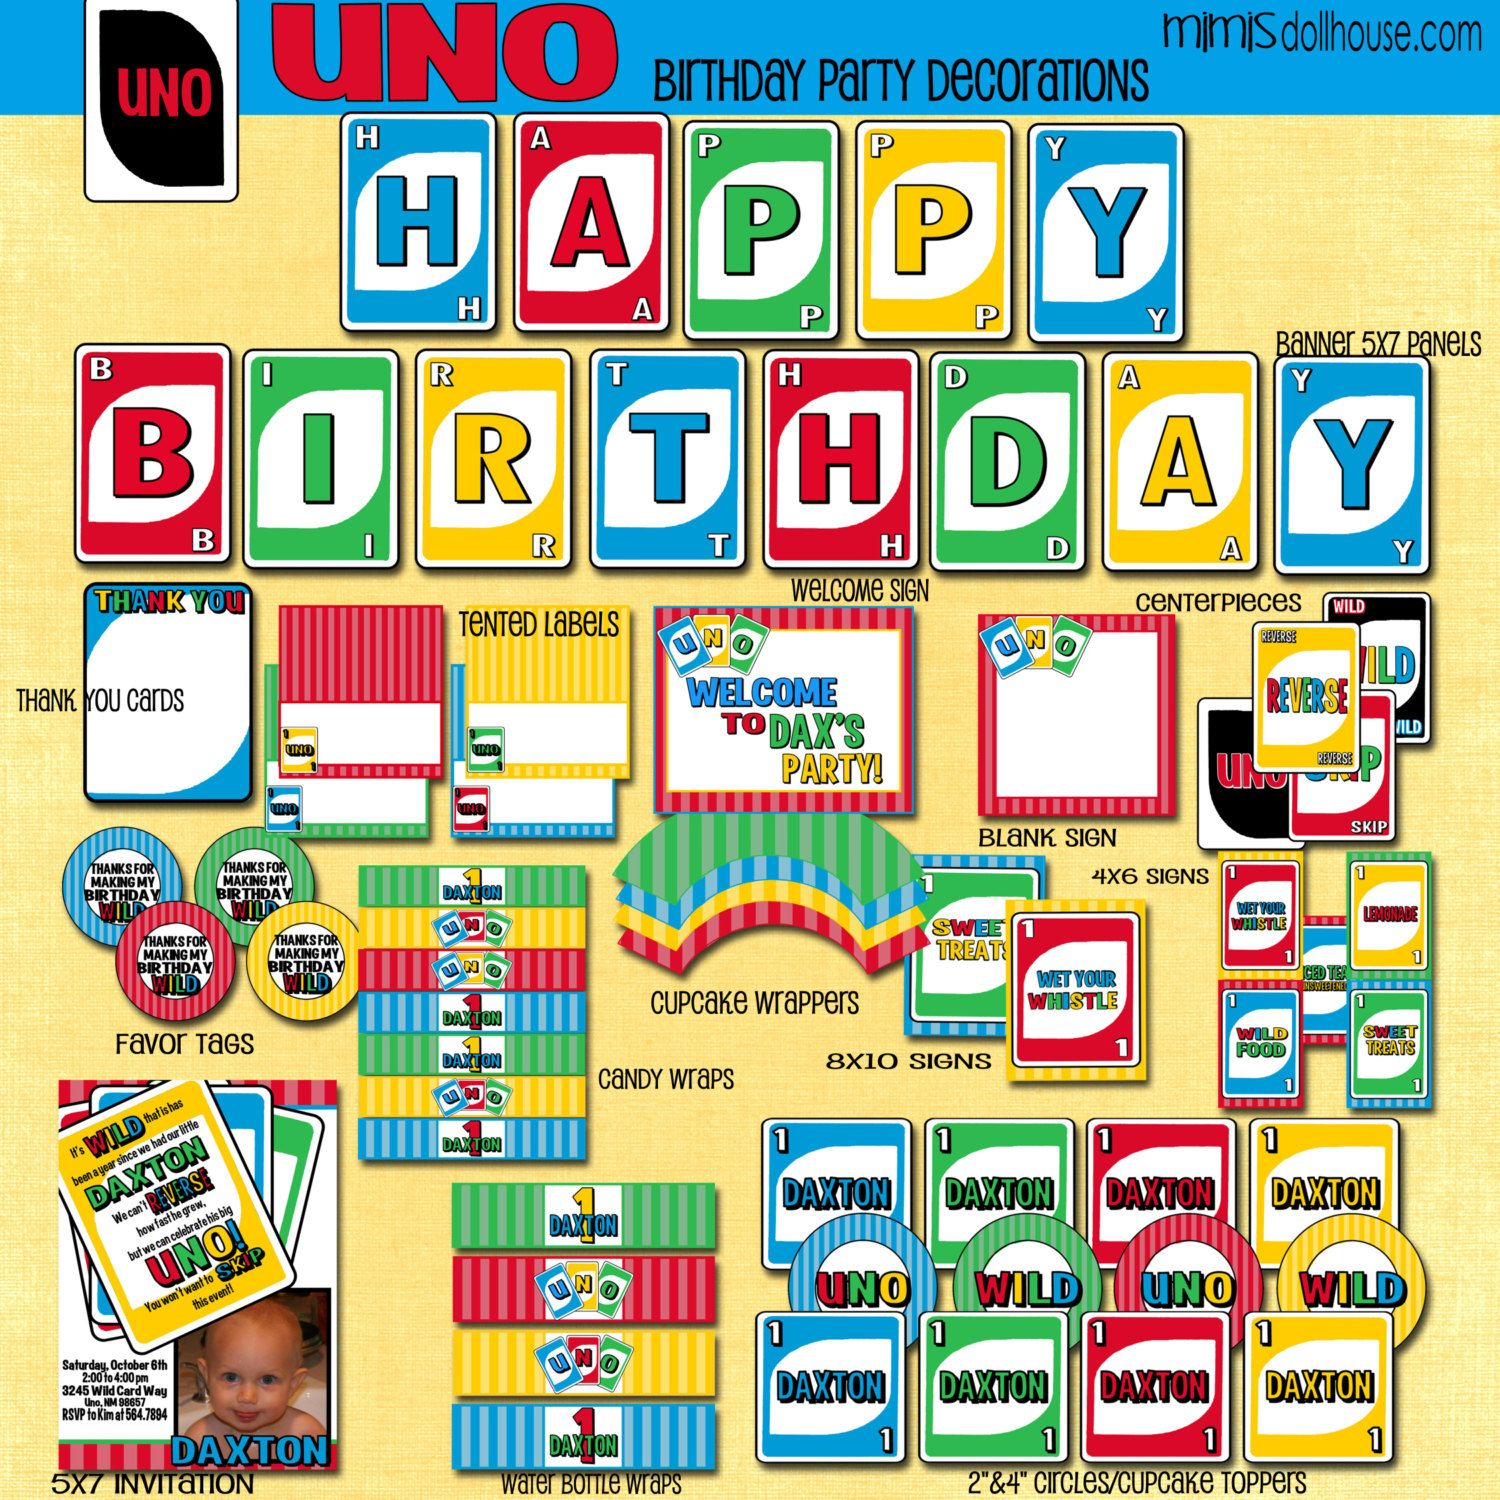 image about Uno Coupons Printable named Printable uno playing cards pdf - Right after easter sweet sale